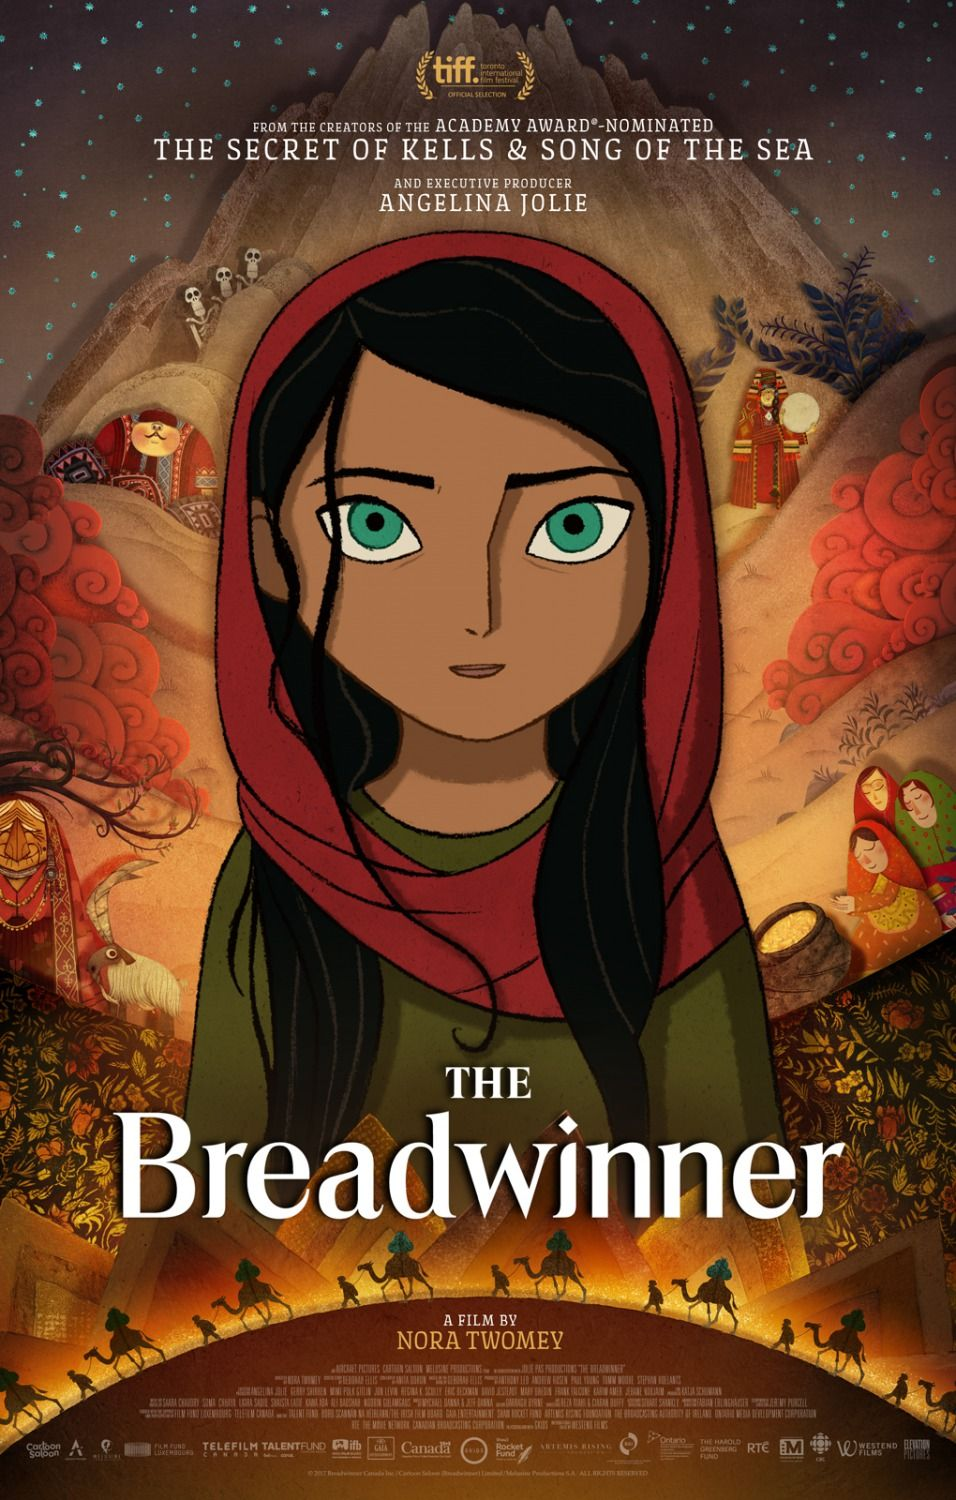 Season Film Festival: The Breadwinner